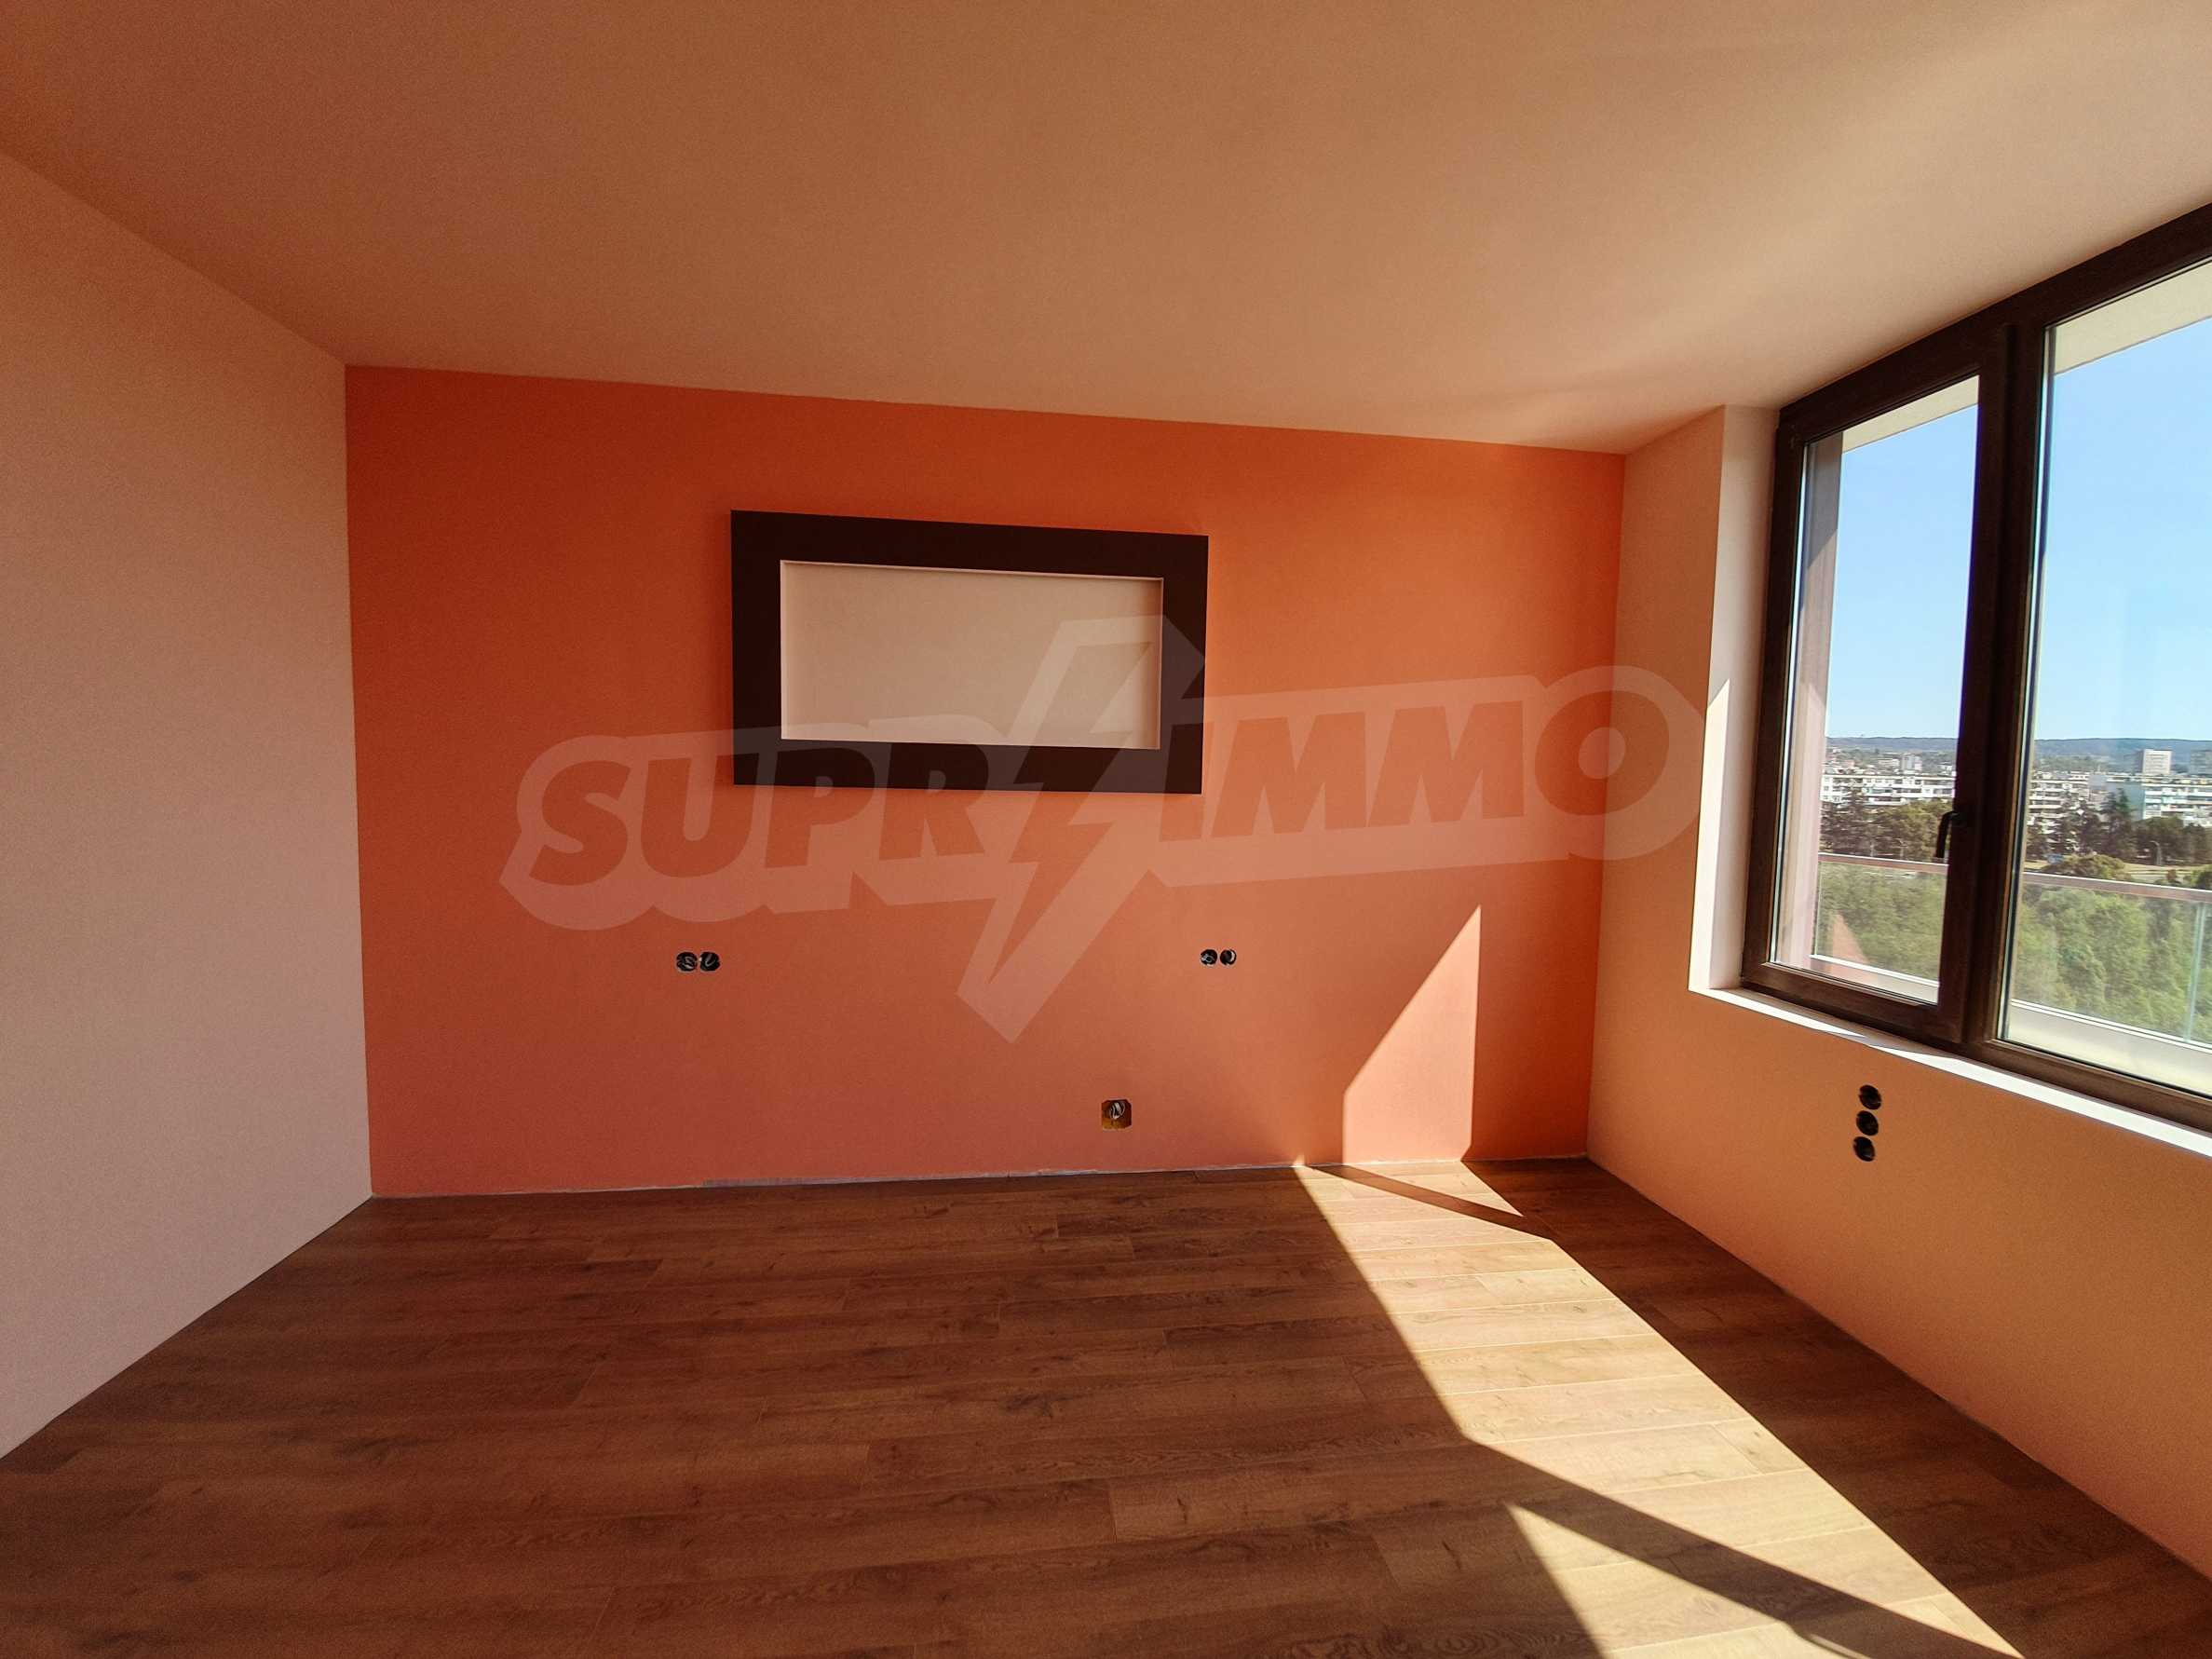 Panoramic two-bedroom apartment with views of the lake and Varna 17